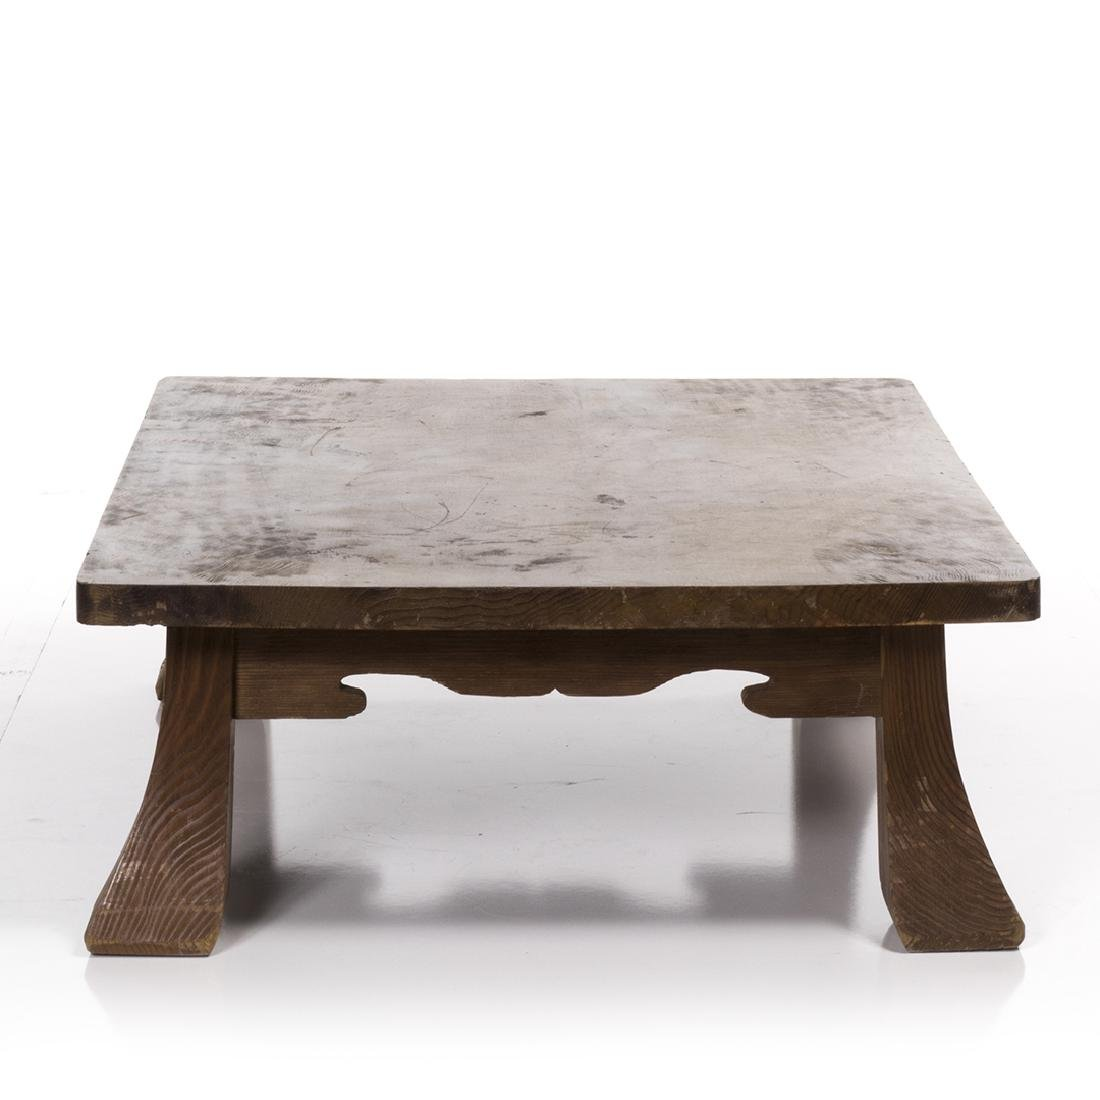 Low Craftsman Style Table - 6